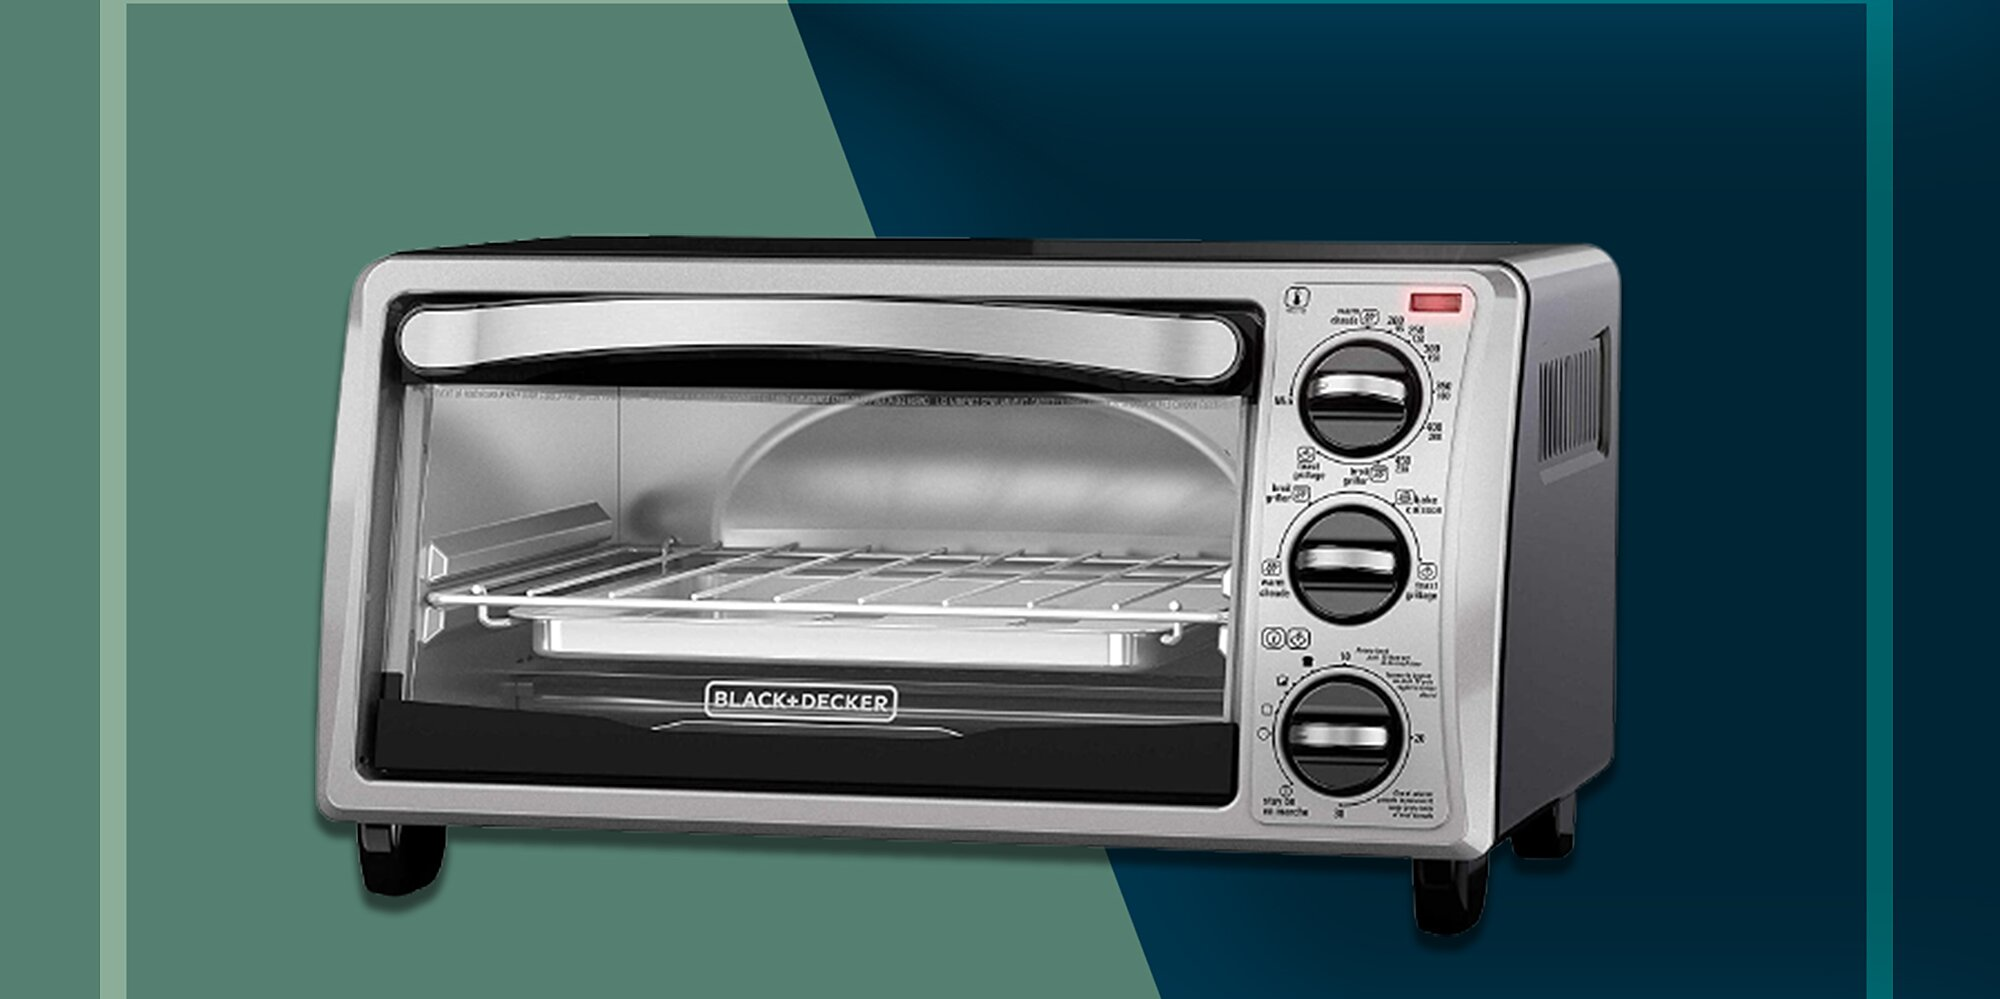 Home Cooks Say This $35 Toaster Oven Is 'Better Than a Conventional Oven'